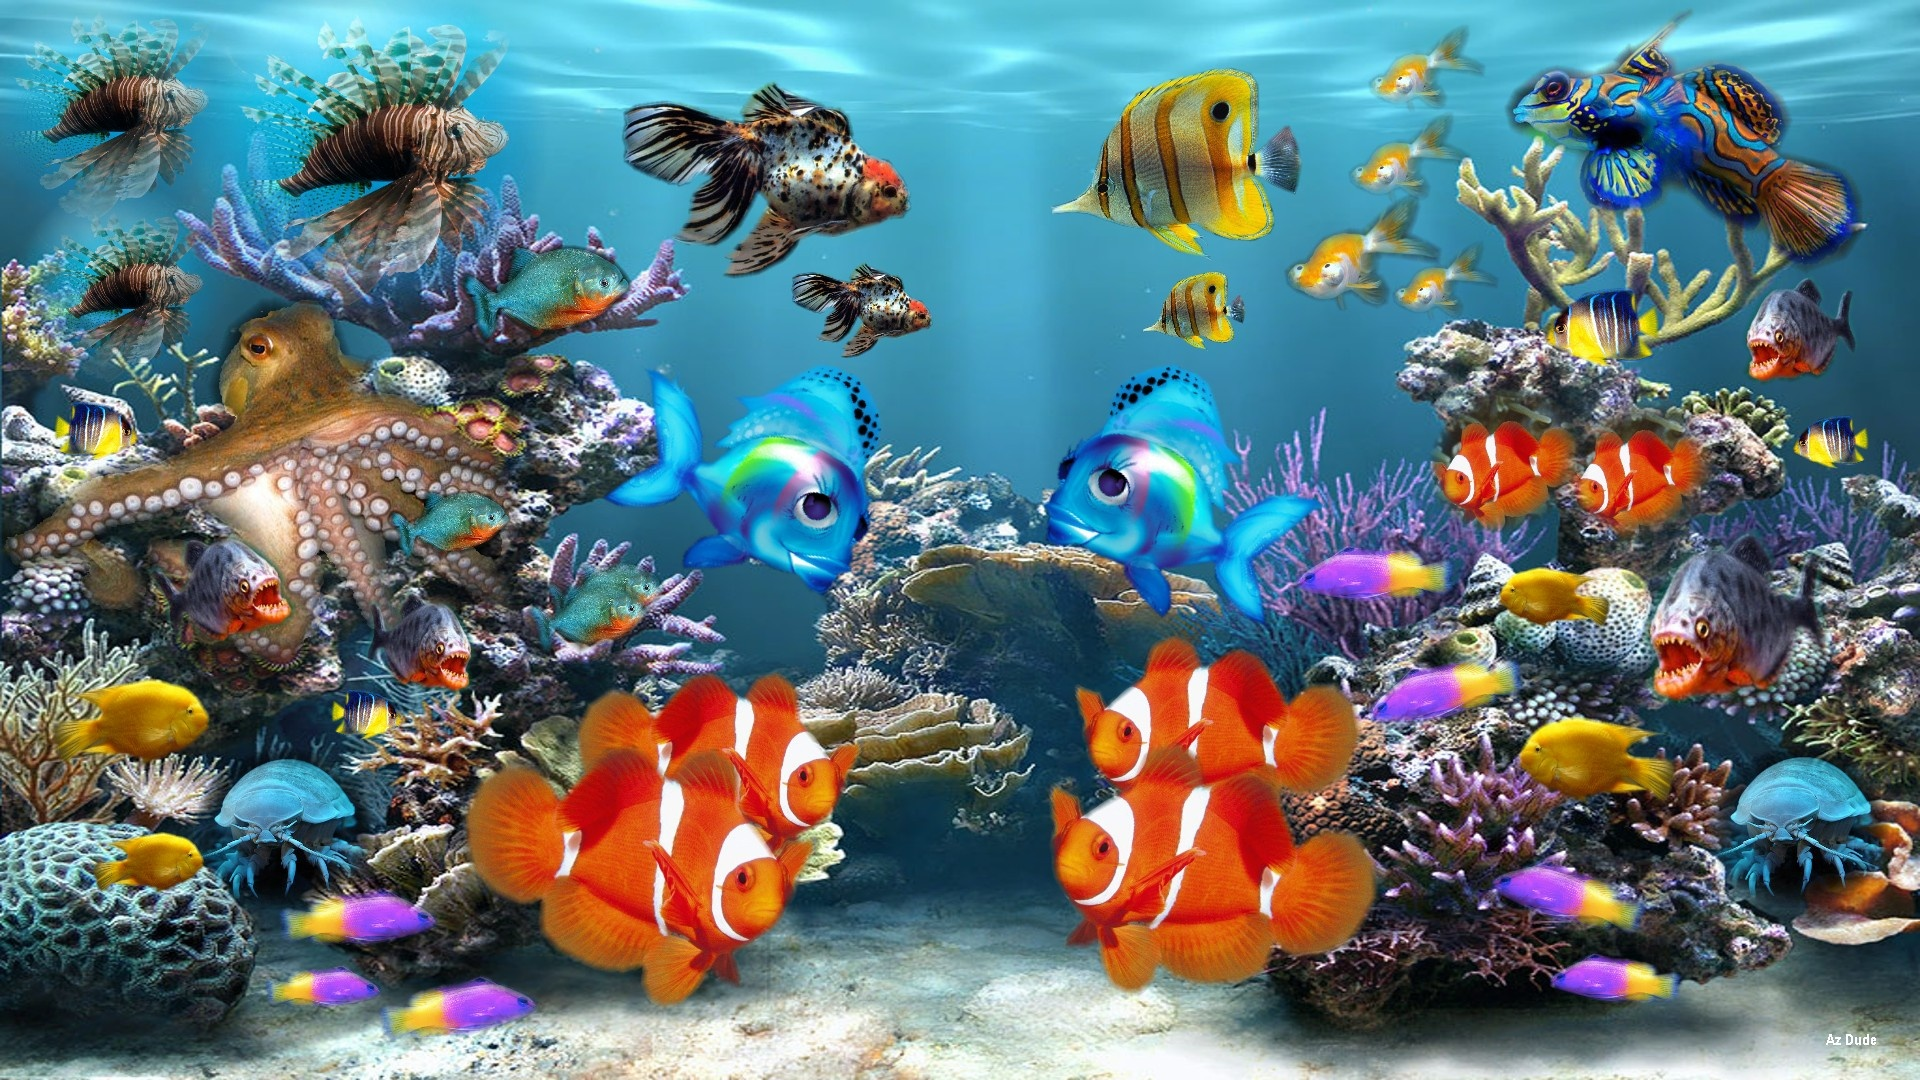 et Tablettes iPad etc   Fish tank 3d live wallpaper download 1920x1080